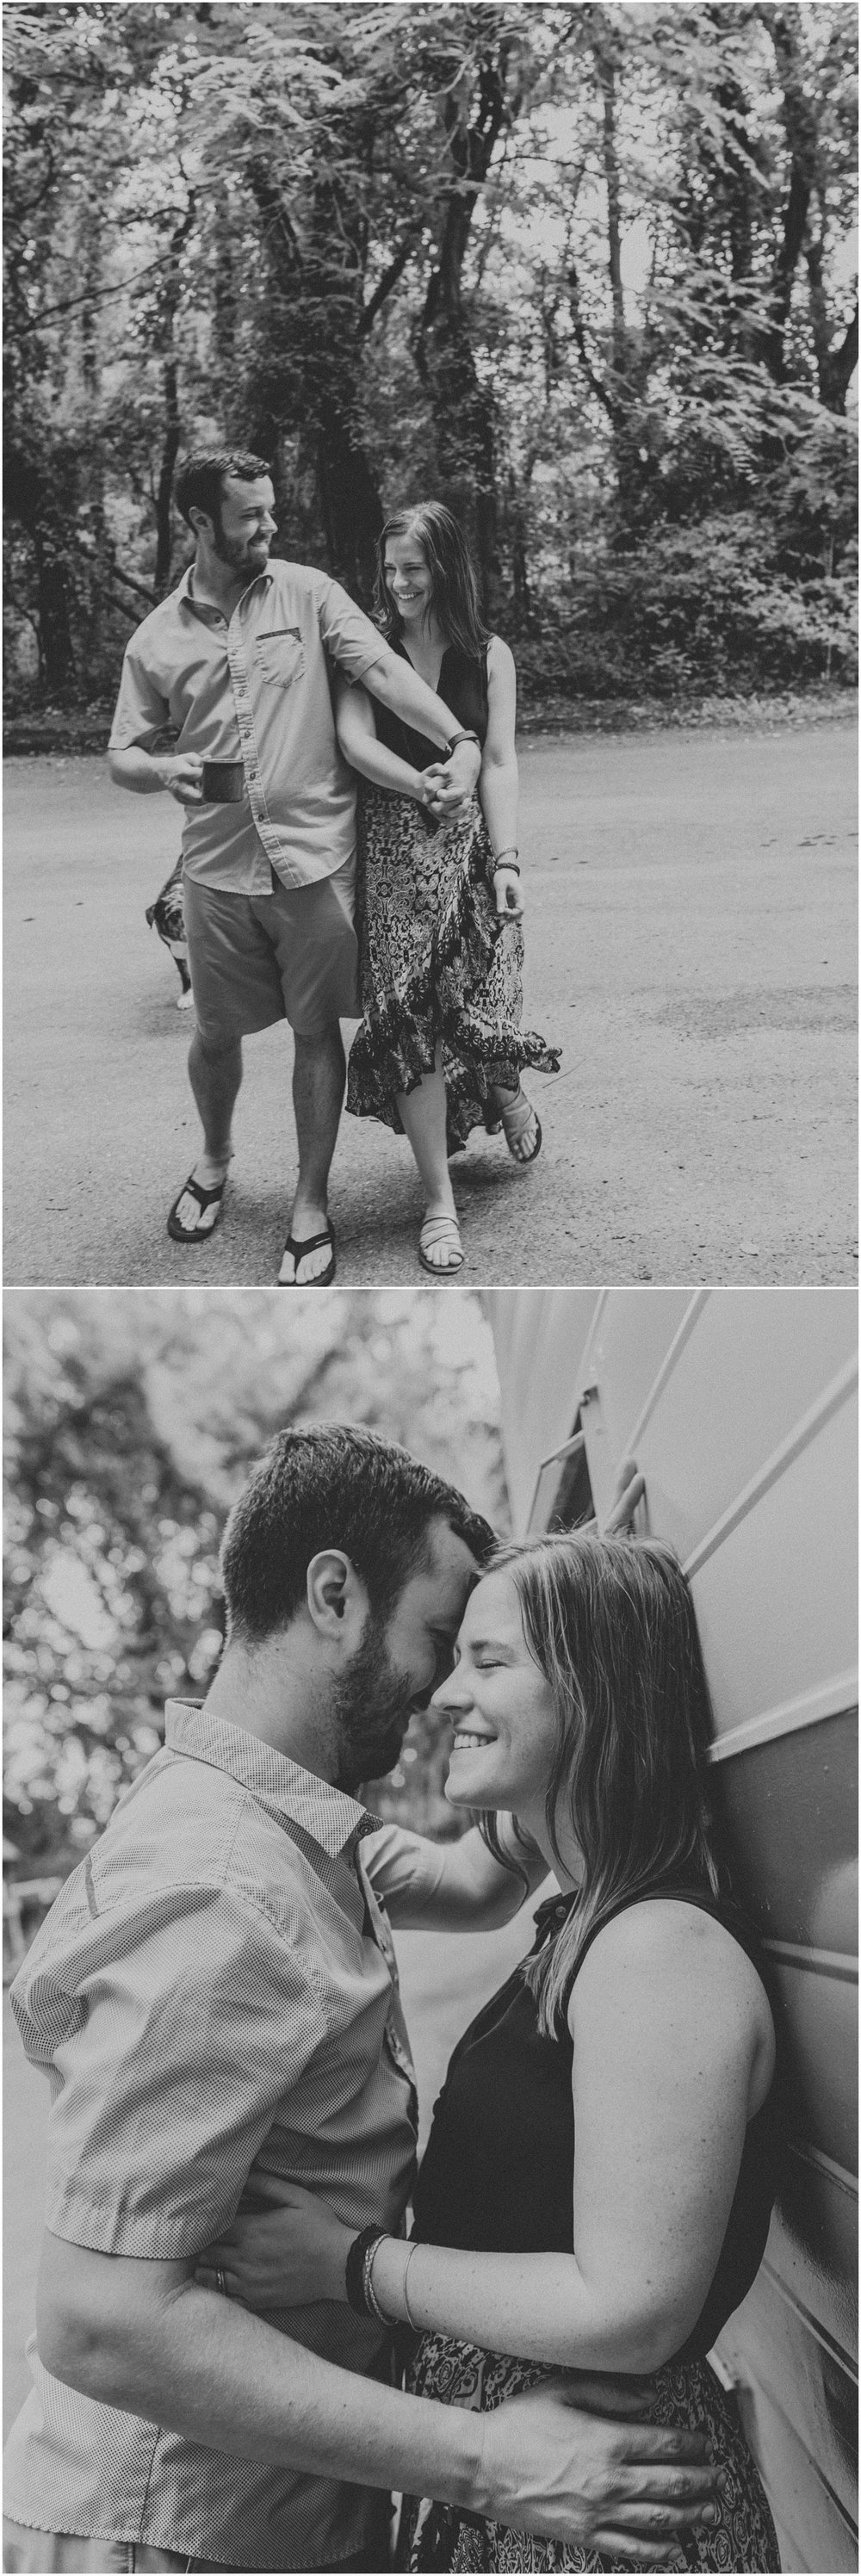 lifestyle-anniversary-engagement-photo session-rv-camping-road trip-vintage trailer-camping-outdoor photos_0236.jpg